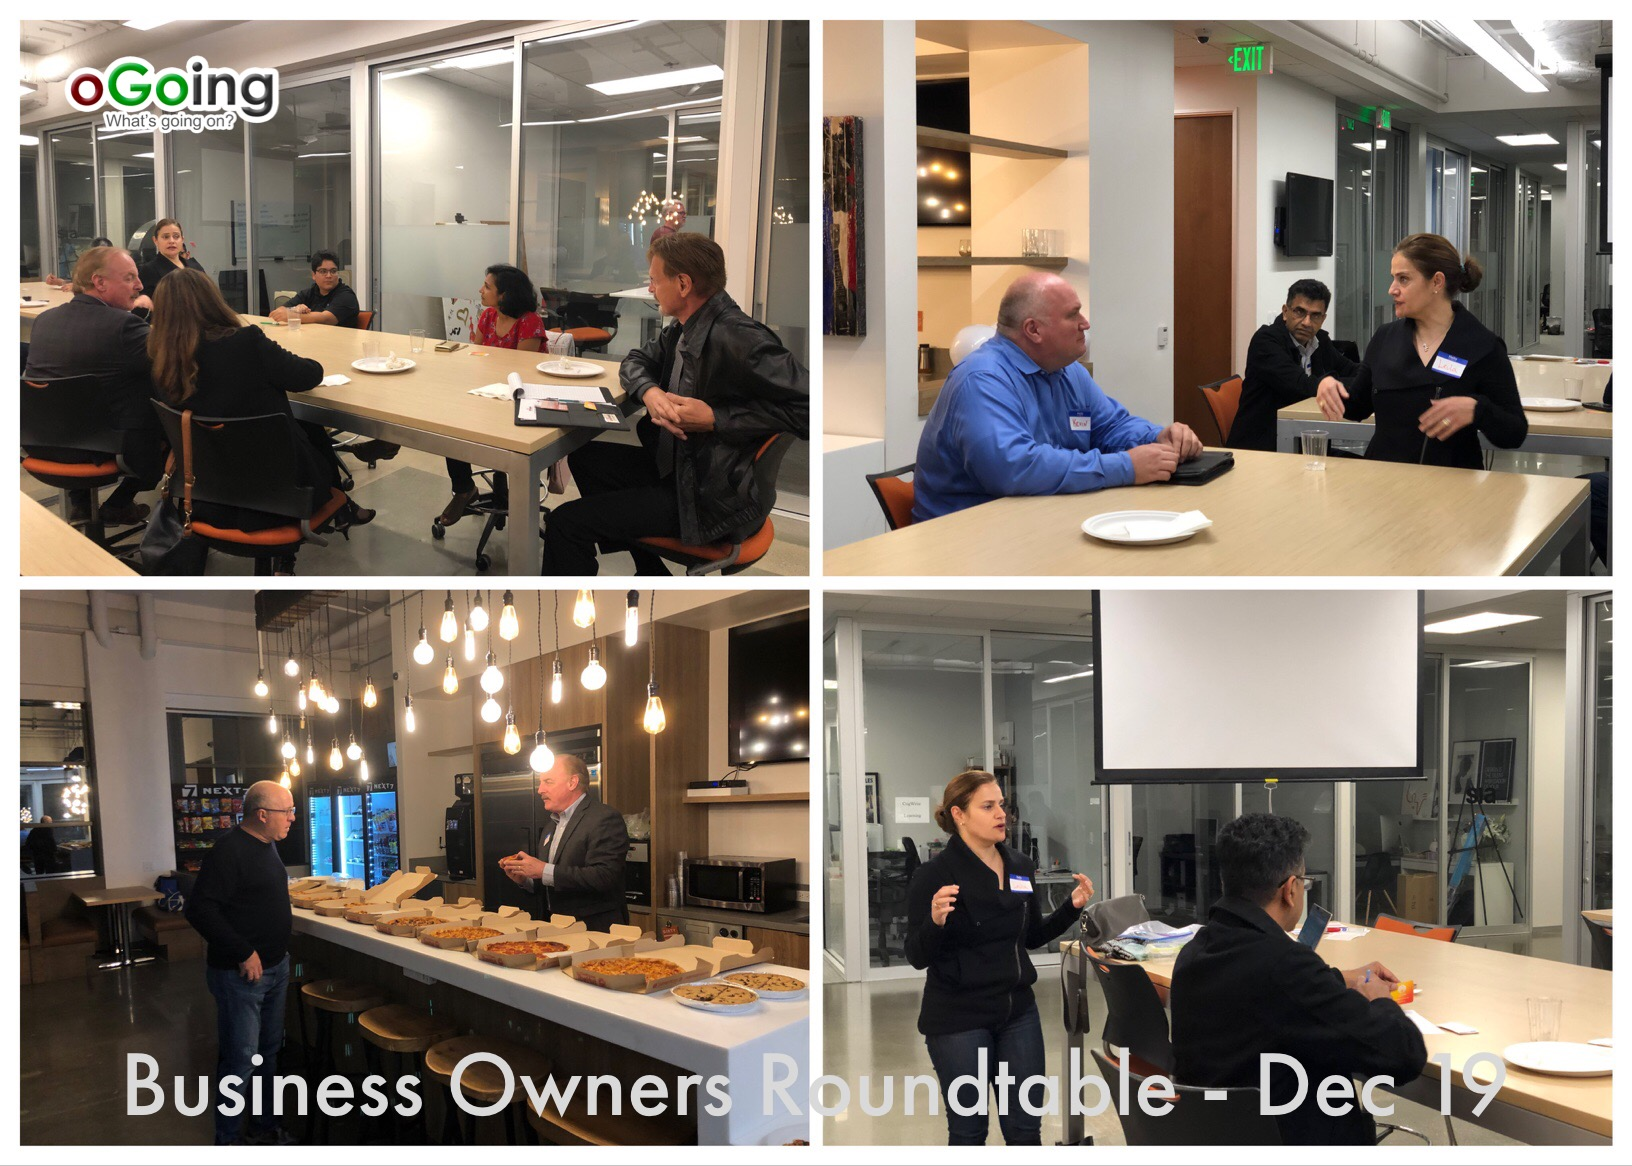 Business Owners Roundtable - December 2018